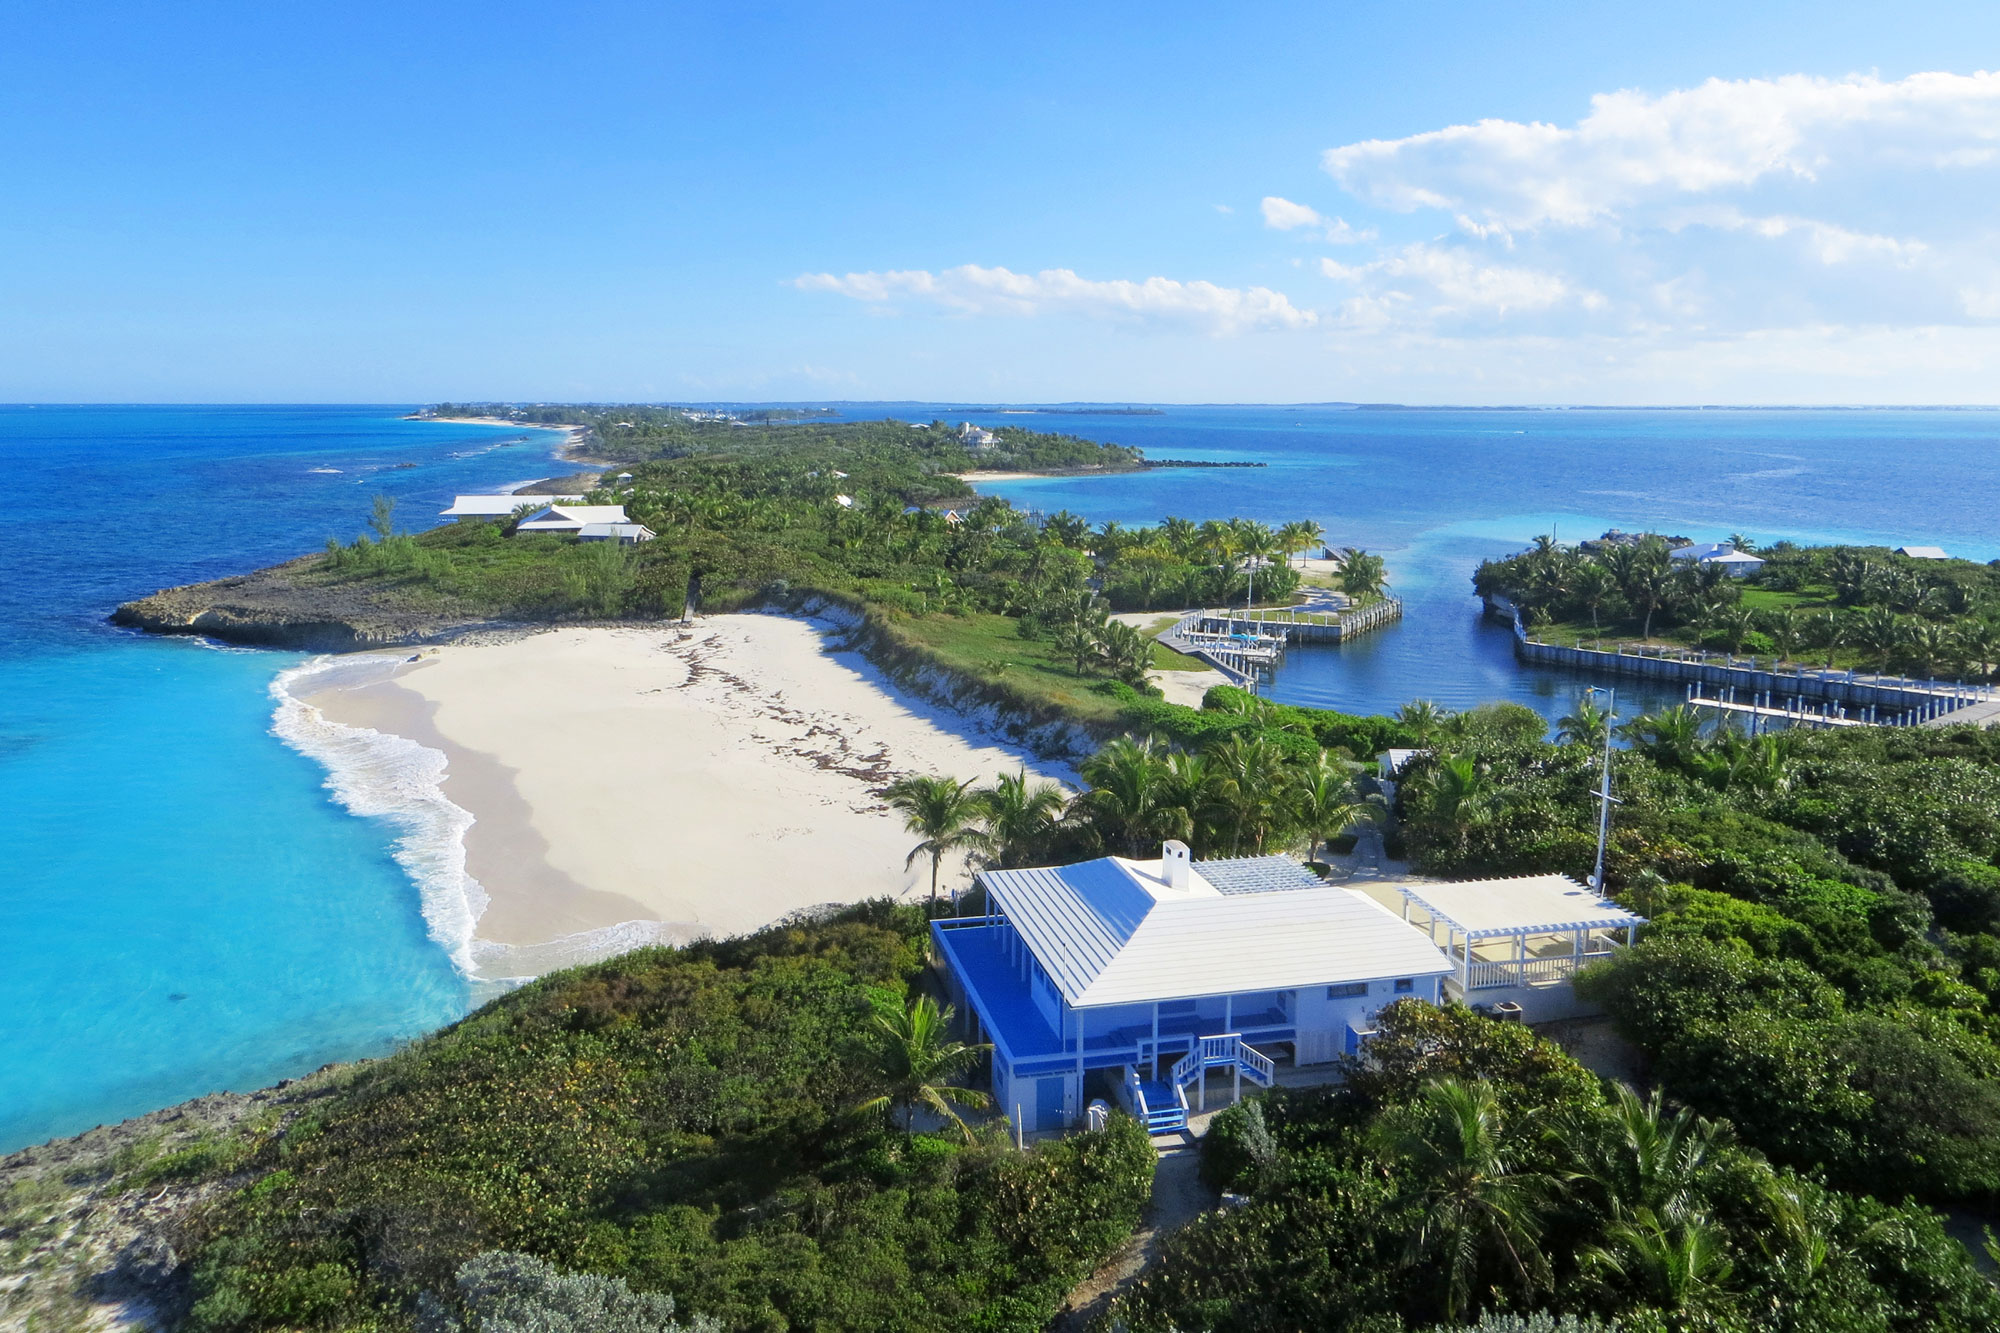 This tropical idyll in the Abaco region of the Bahamas includes four unique residences, staff quarters, a party pagoda, beach pavilion, and its own private marina.